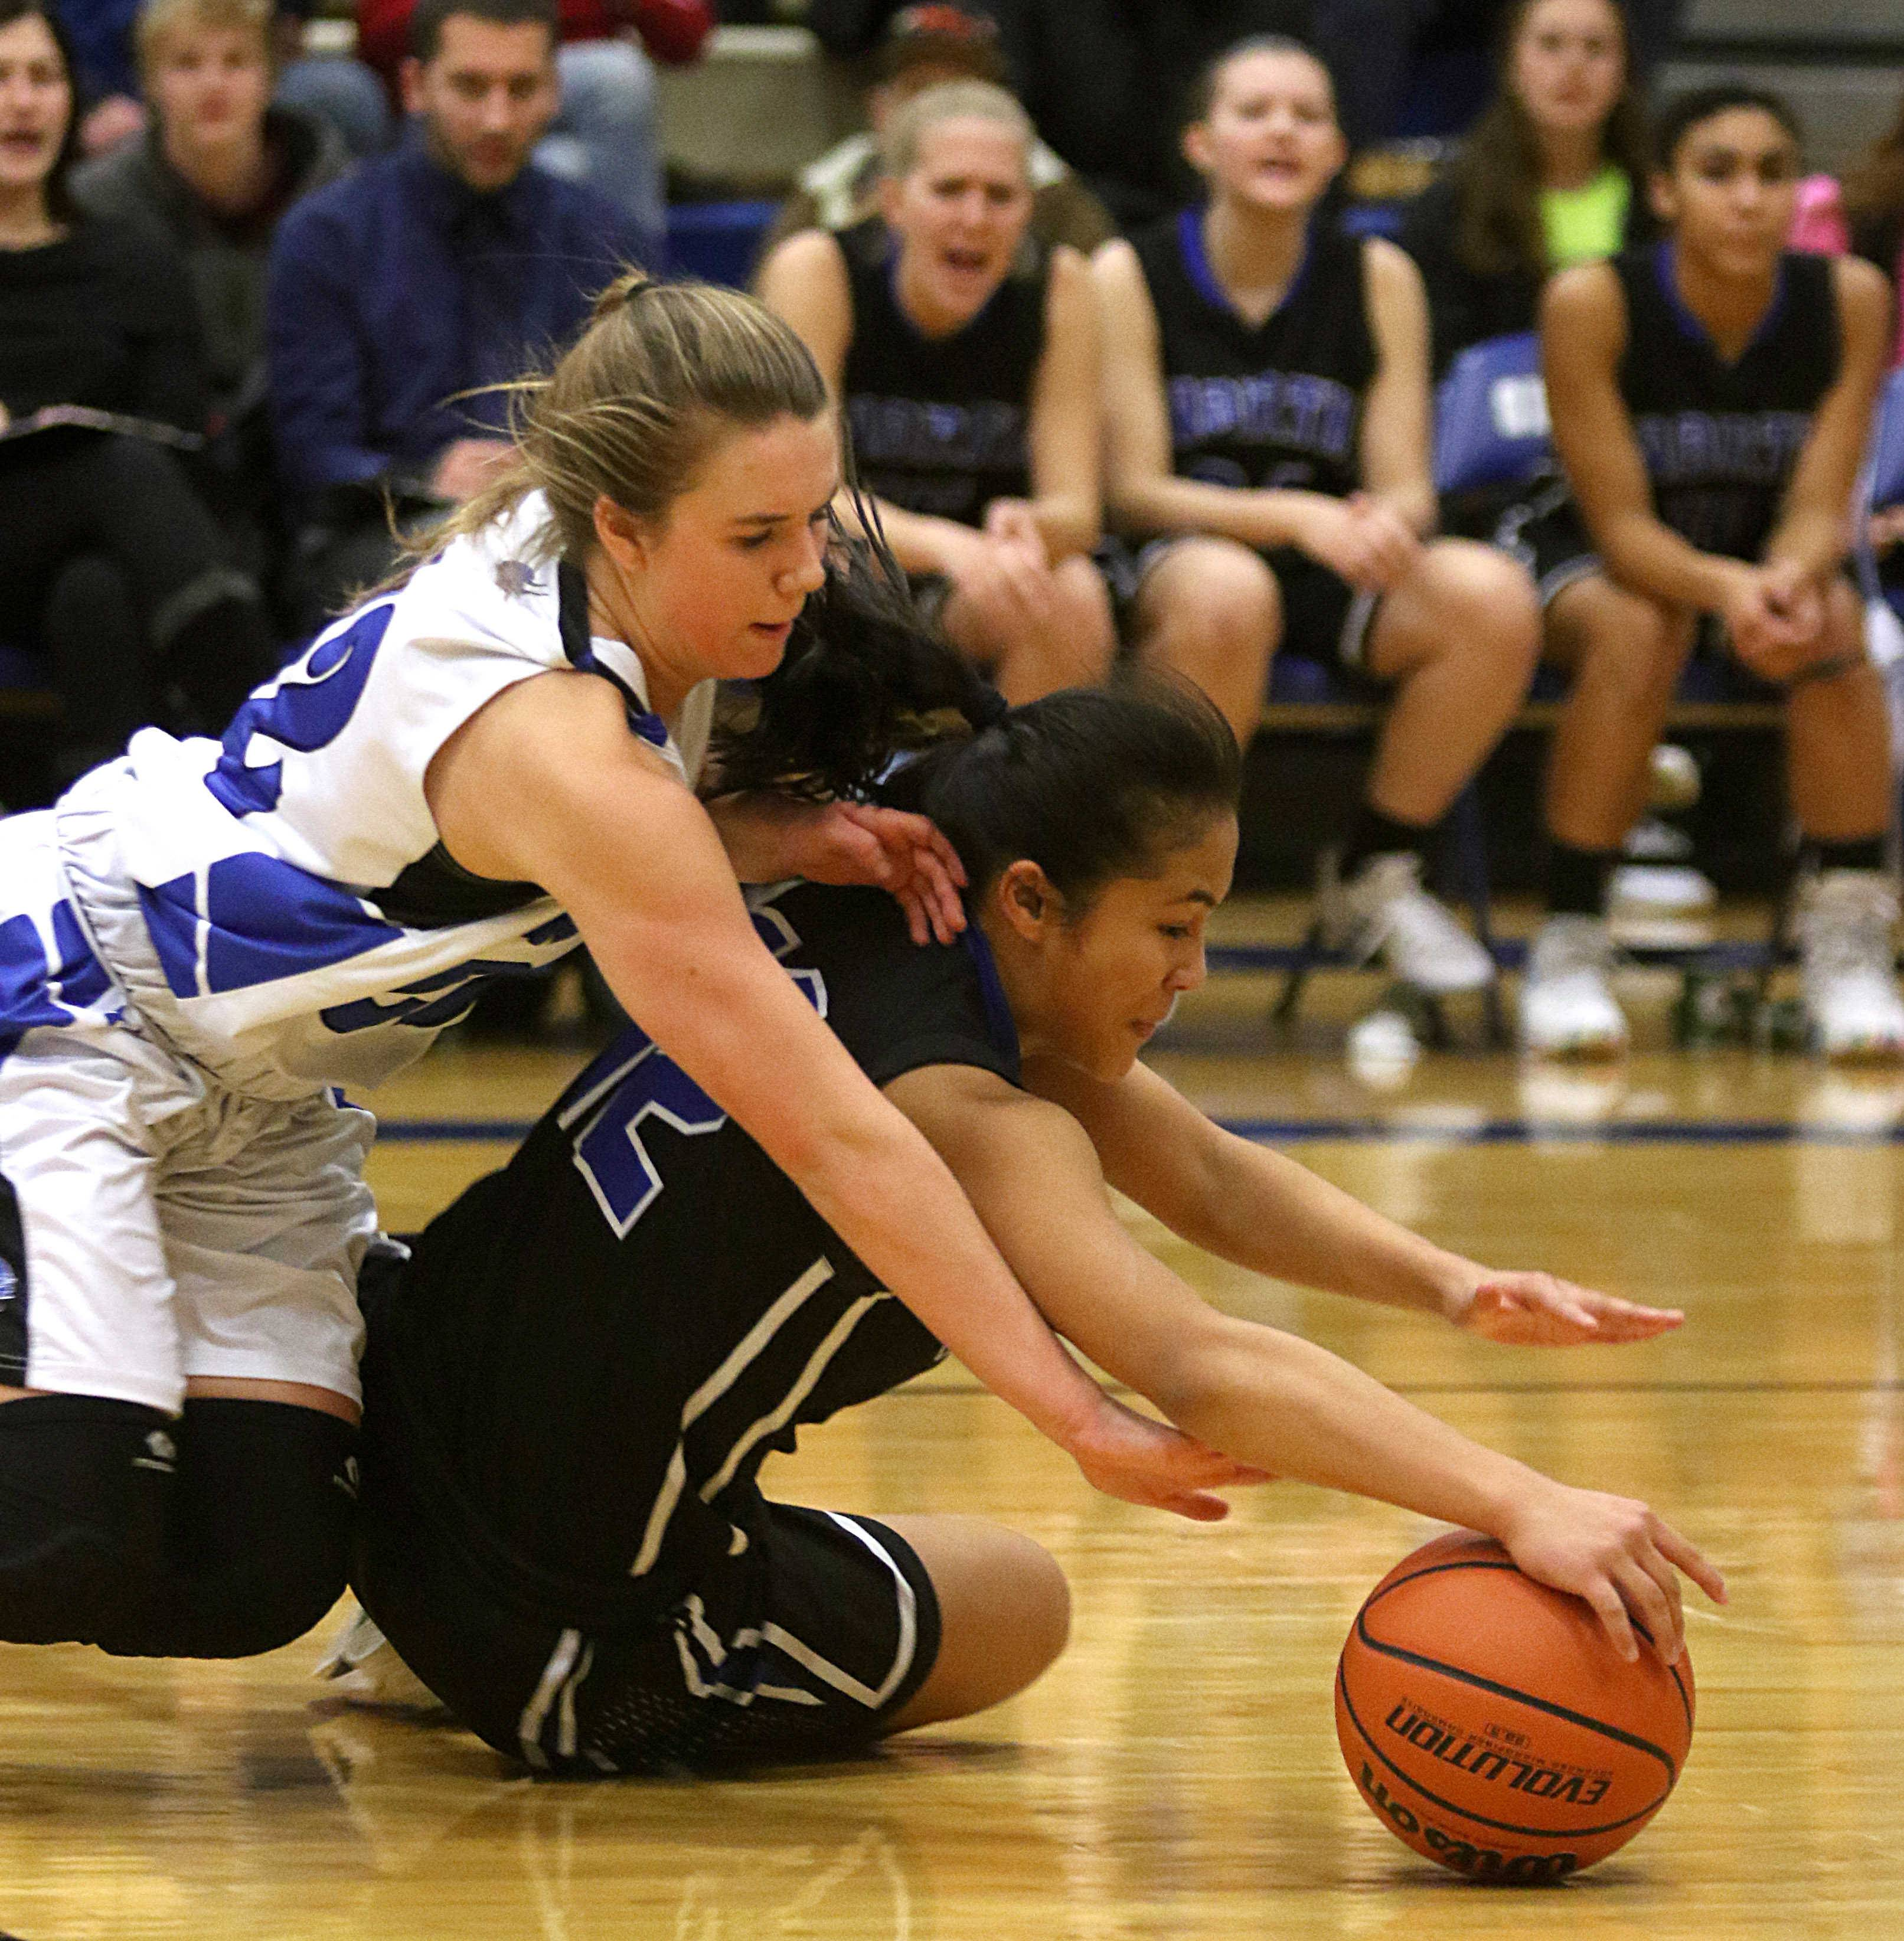 St. Charles North's Leilauni Chanthaboury, bottom, and Geneva's Brie Borkowicz race for the ball during varsity girls basketball at Geneva Friday night.